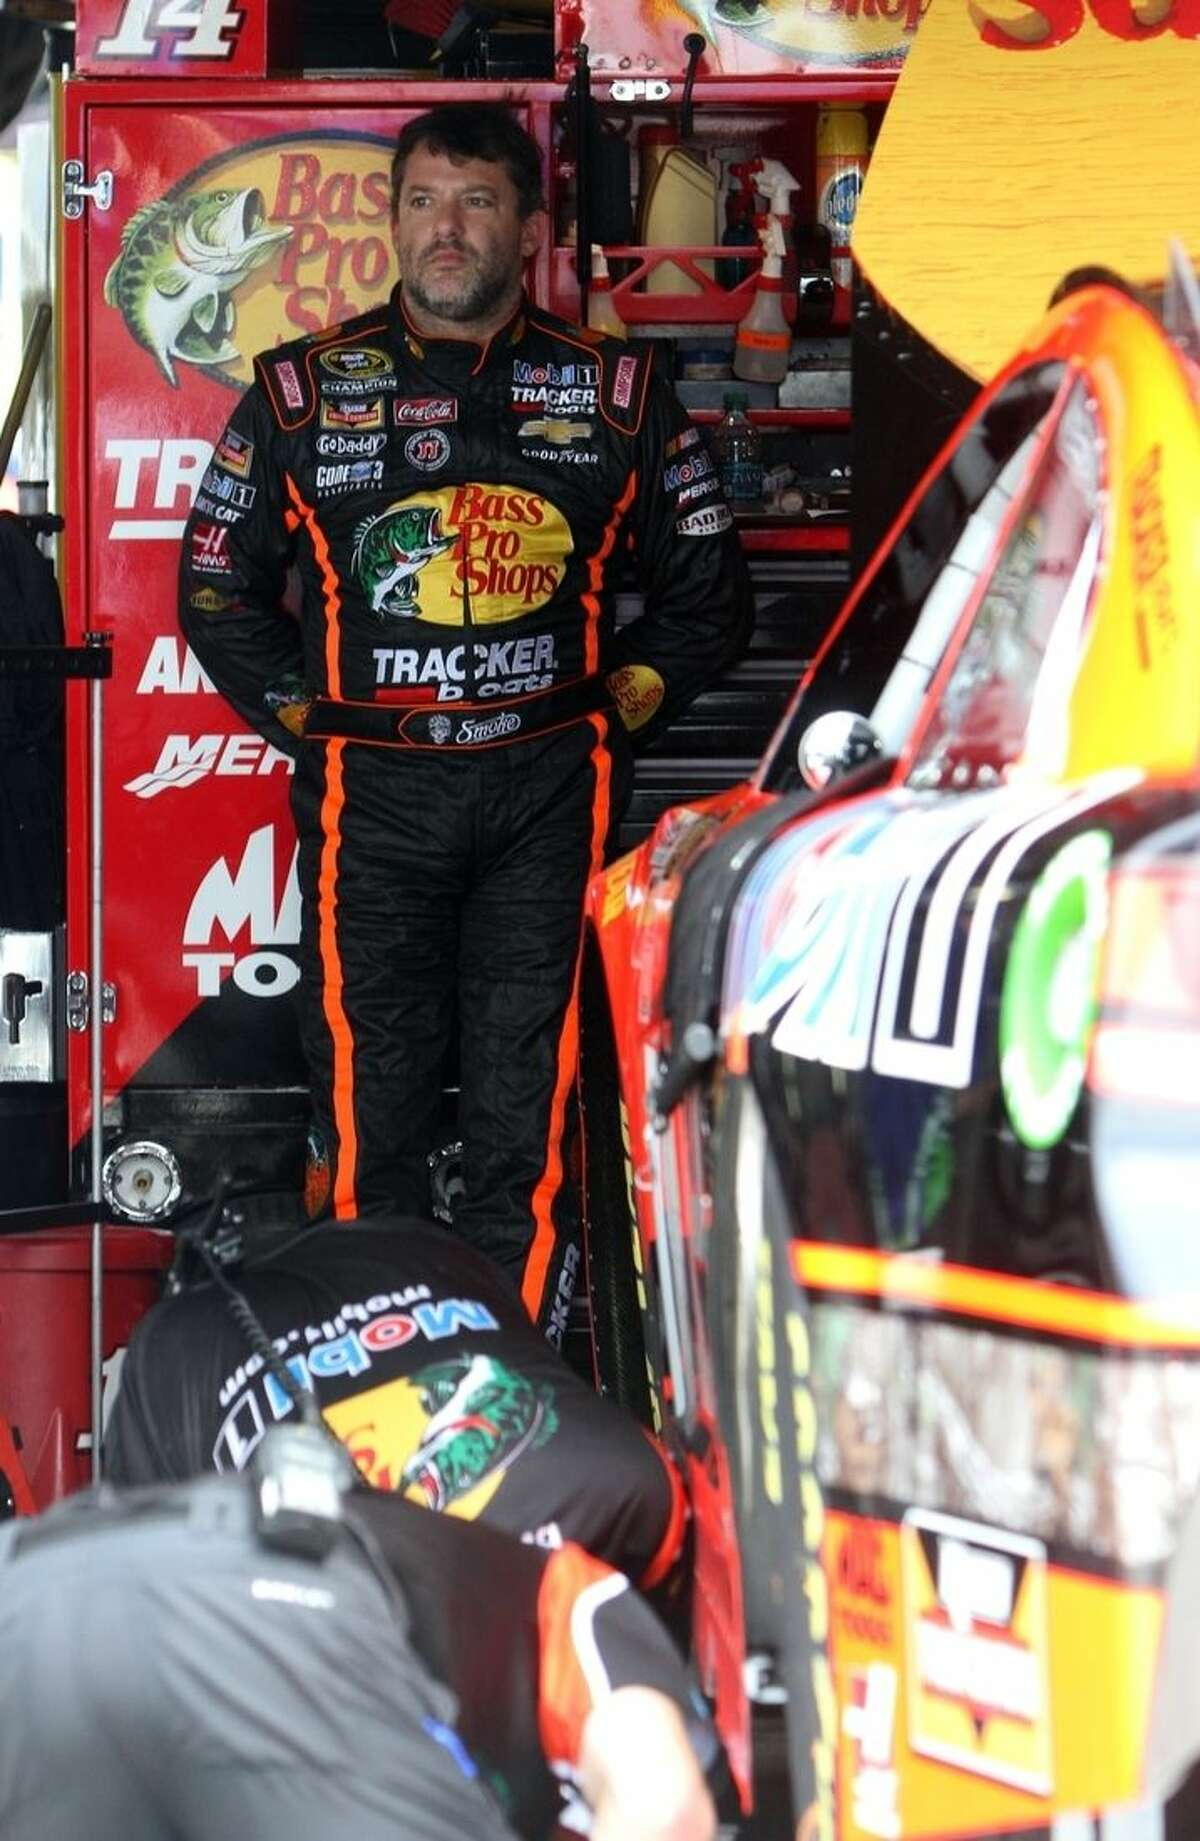 Driver Tony Stewart waits in the garage as his crew makes adjustments to his car during a practice session for Saturday night's NASCAR Sprint Cup series auto race at Richmond International Raceway, Friday Sept. 5, 2014, Richmond, Va. (AP Photo/Richmond Times Dispatch, Bud Kraft)